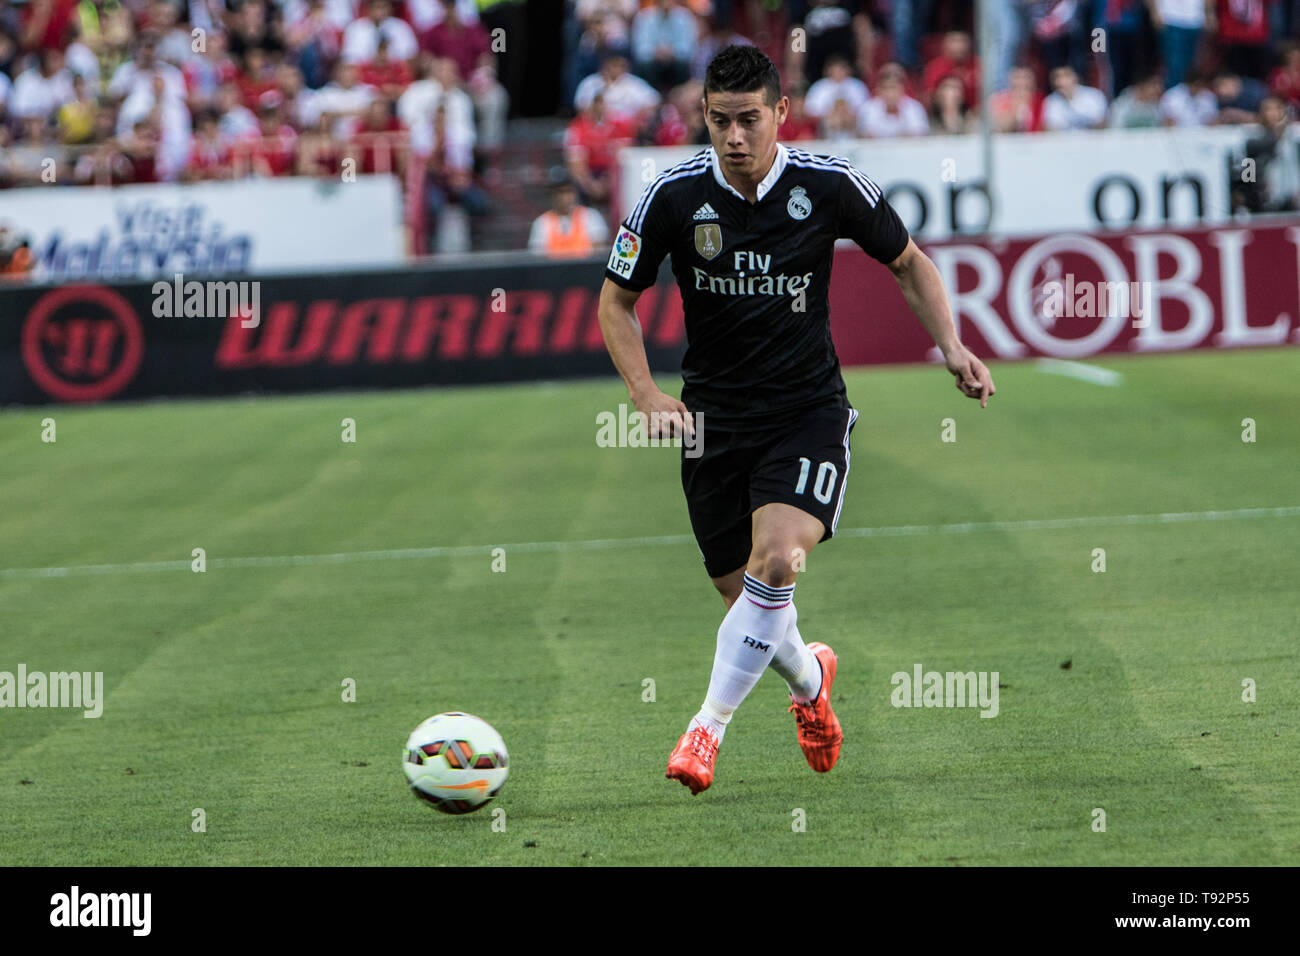 fa1a74a71e6 James Rodriguez of Real Madrid in action during the match of La Liga BBVA  between Sevilla